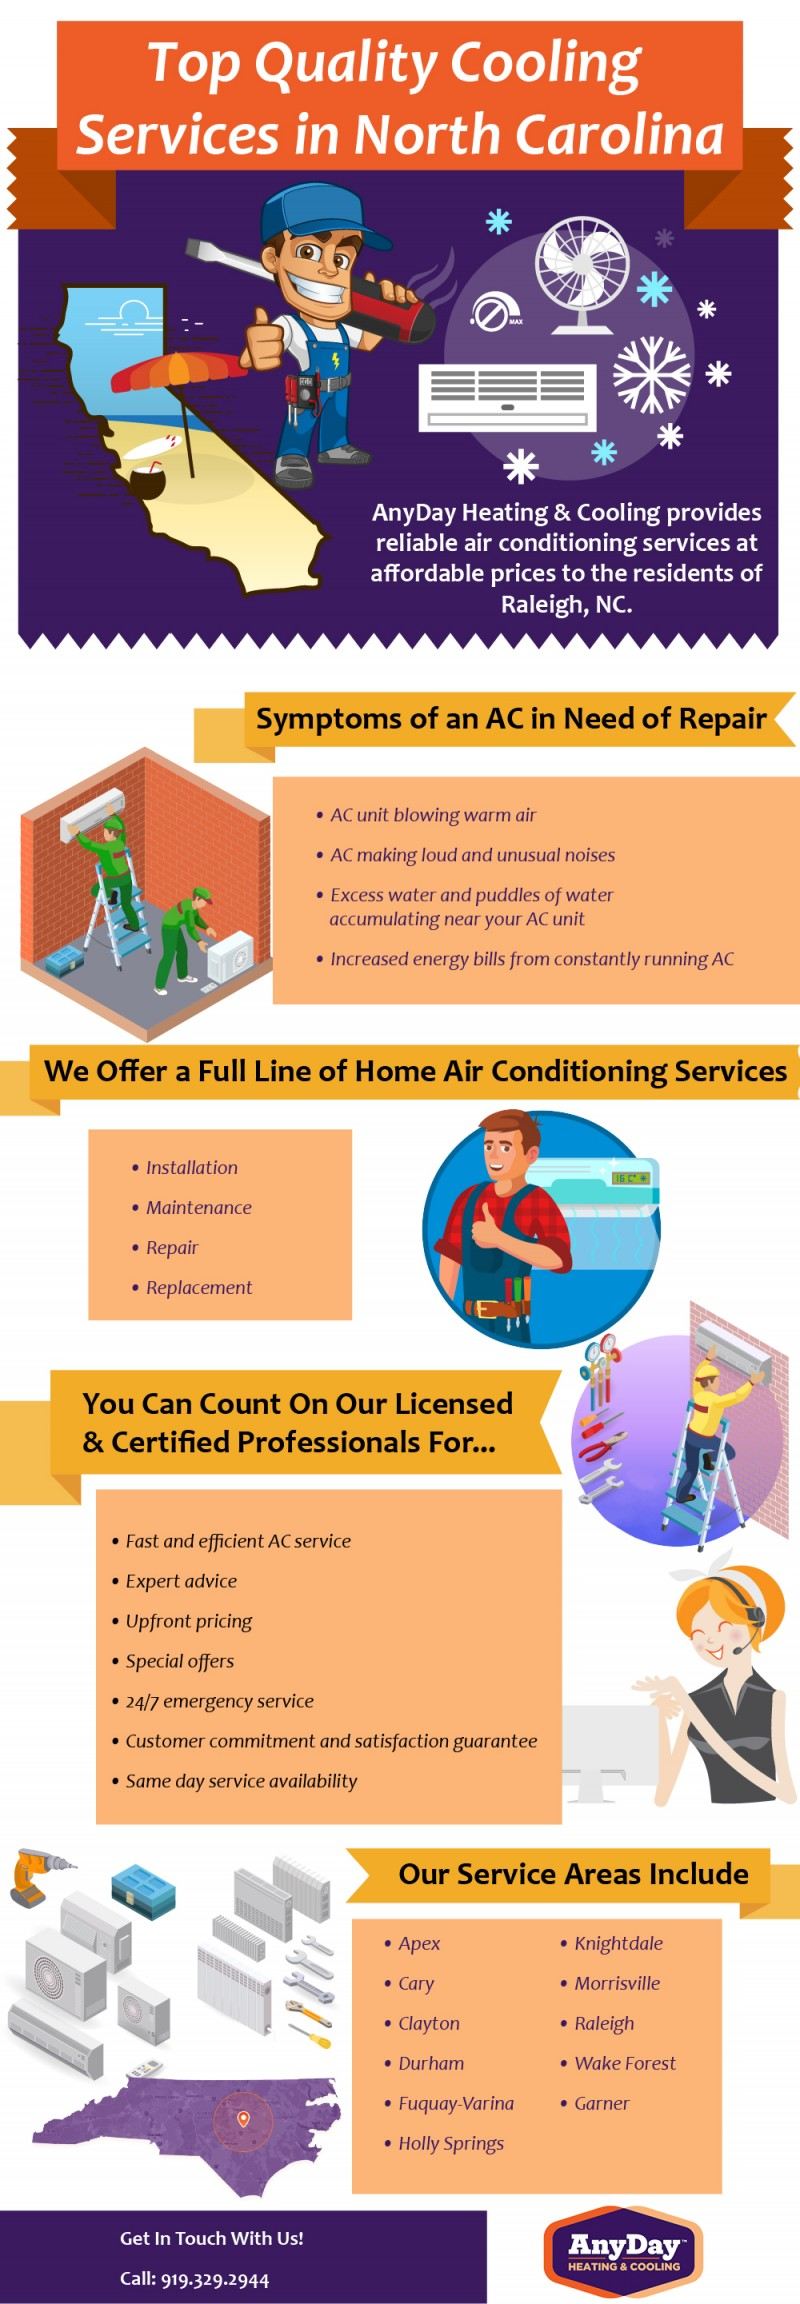 Get Air Conditioning Service In Garner For Your Home Comfort